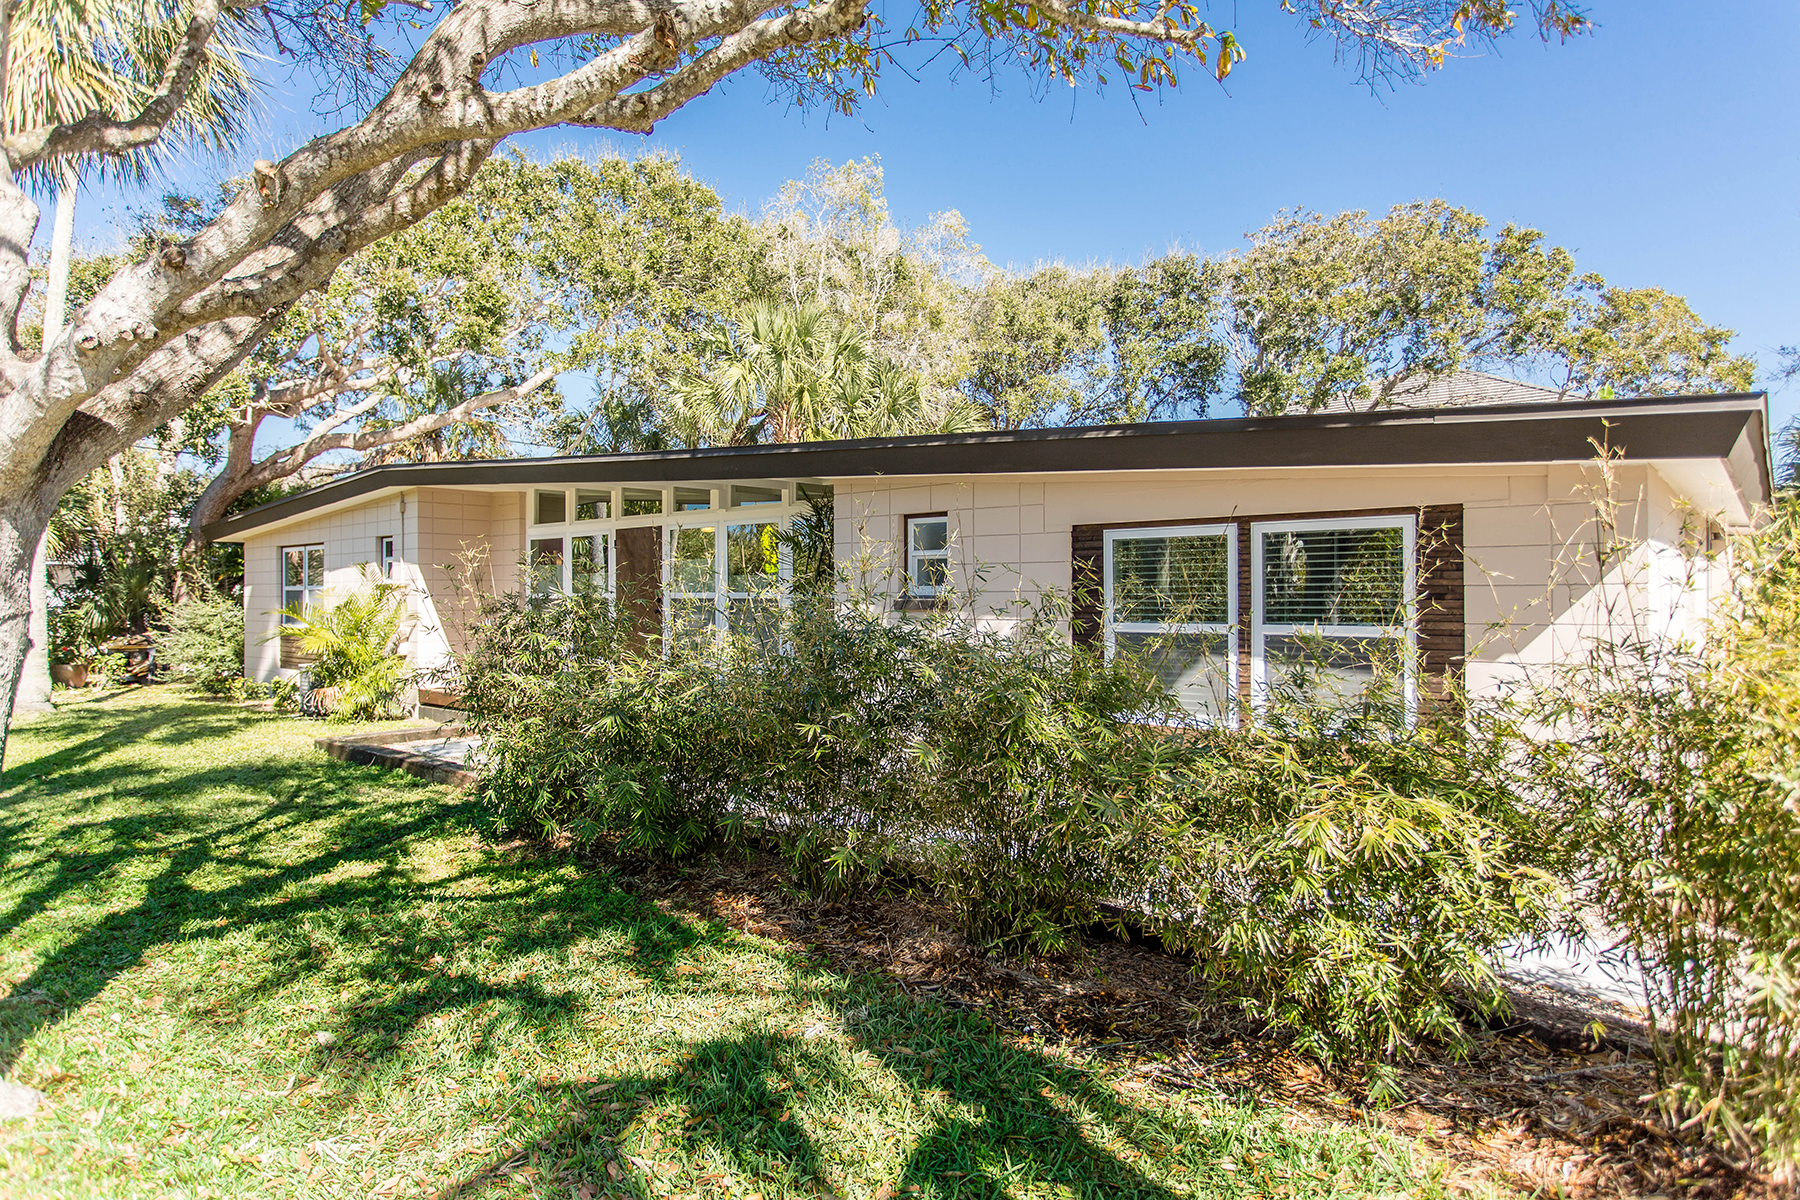 Single Family Home for Sale at BELLEAIR BEACH 501 Gulf Blvd Belleair Beach, Florida, 33786 United States